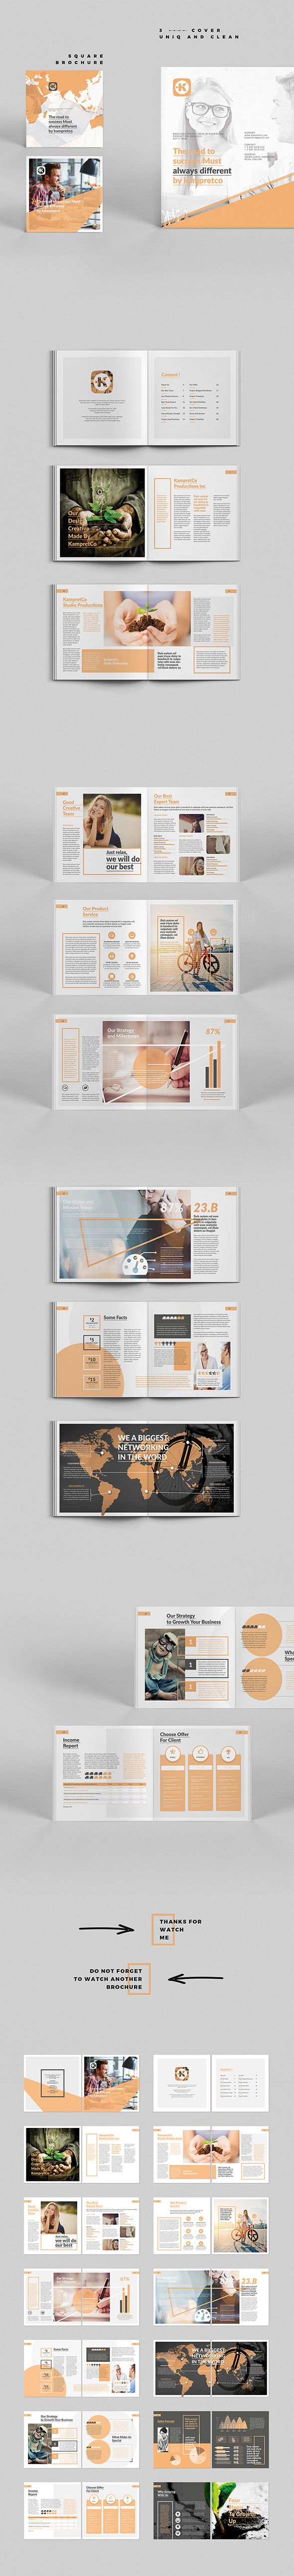 customizable, customize, design, gray, green, indesign template, minimal, modern, multipurpose, PDF file, print template, professional, proposal, square brochure, Square business brochure, stationery, us letter